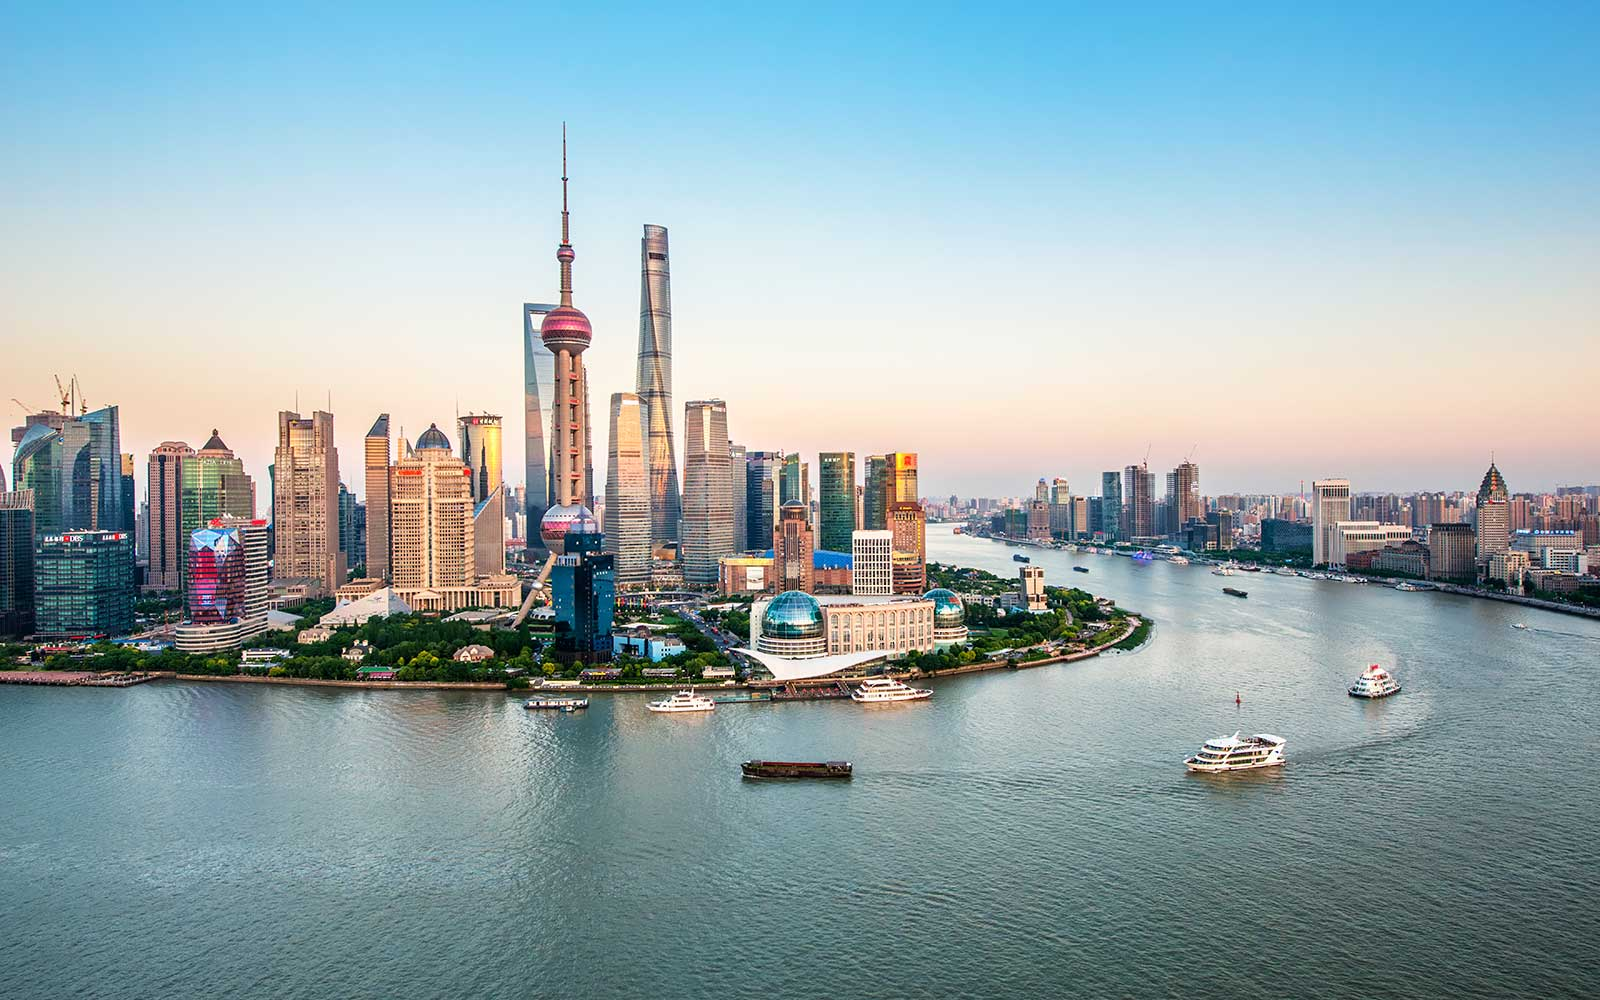 Counting Down the Best Cities of Asia: No. 8 Shanghai